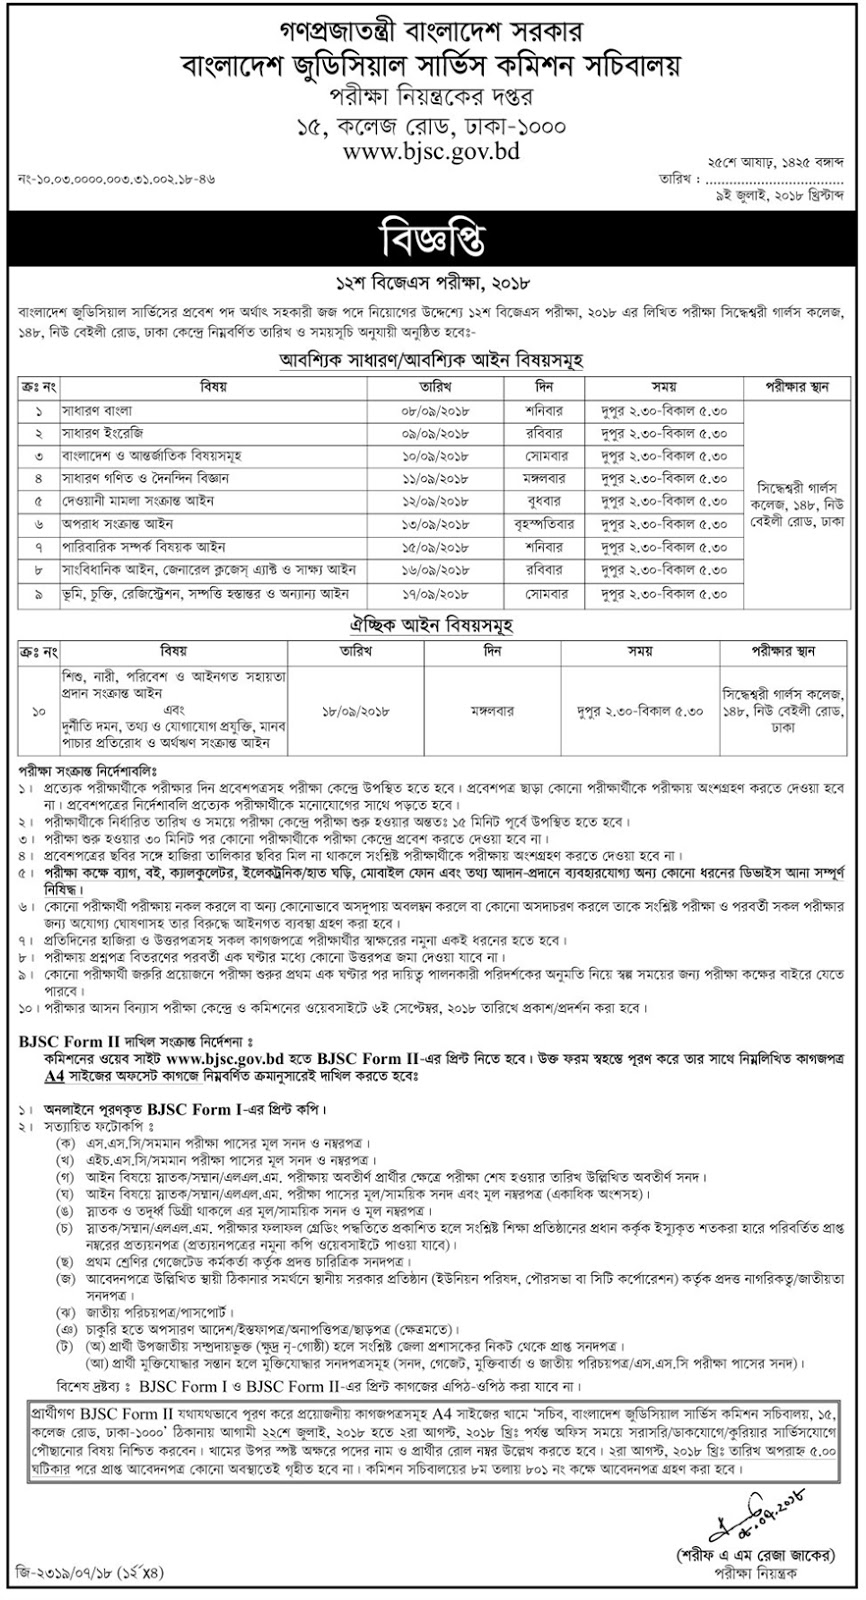 12th BJSC Assistant Judge Recruitment Exam 2018 Routine